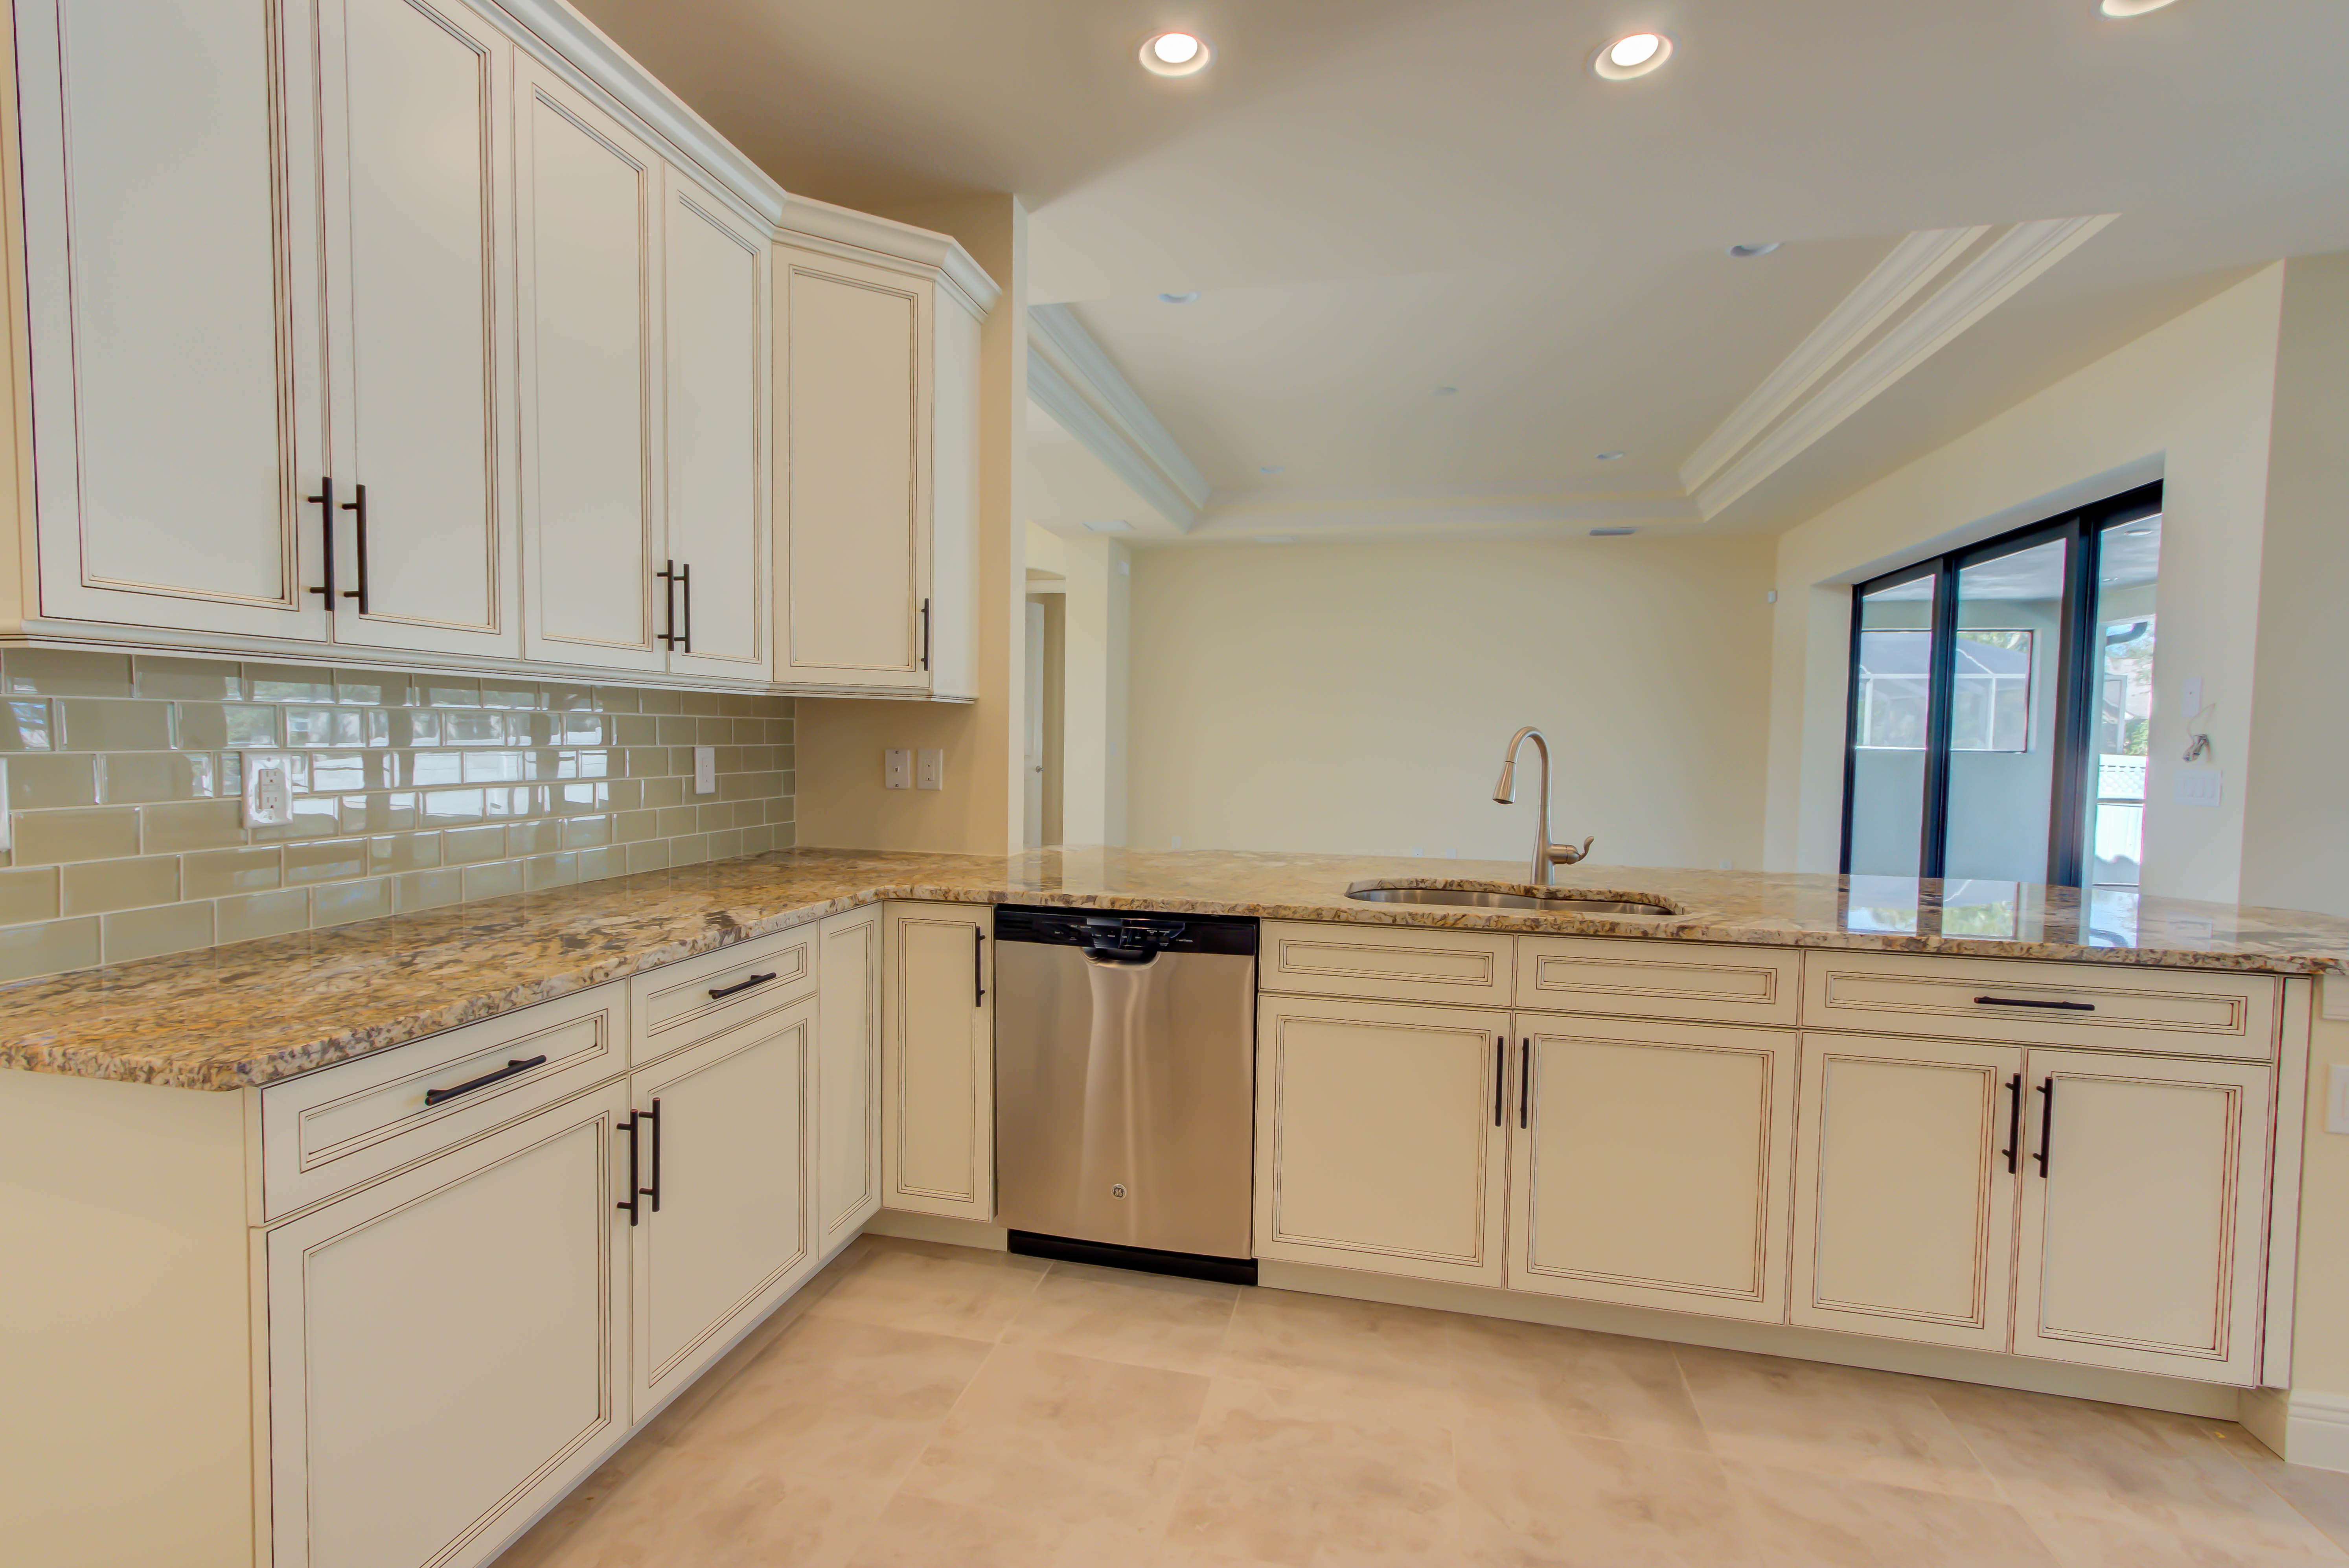 Frey Son 2129 Cabinet Genies Kitchen And Bathroom Remodeling Cape Coral Fl